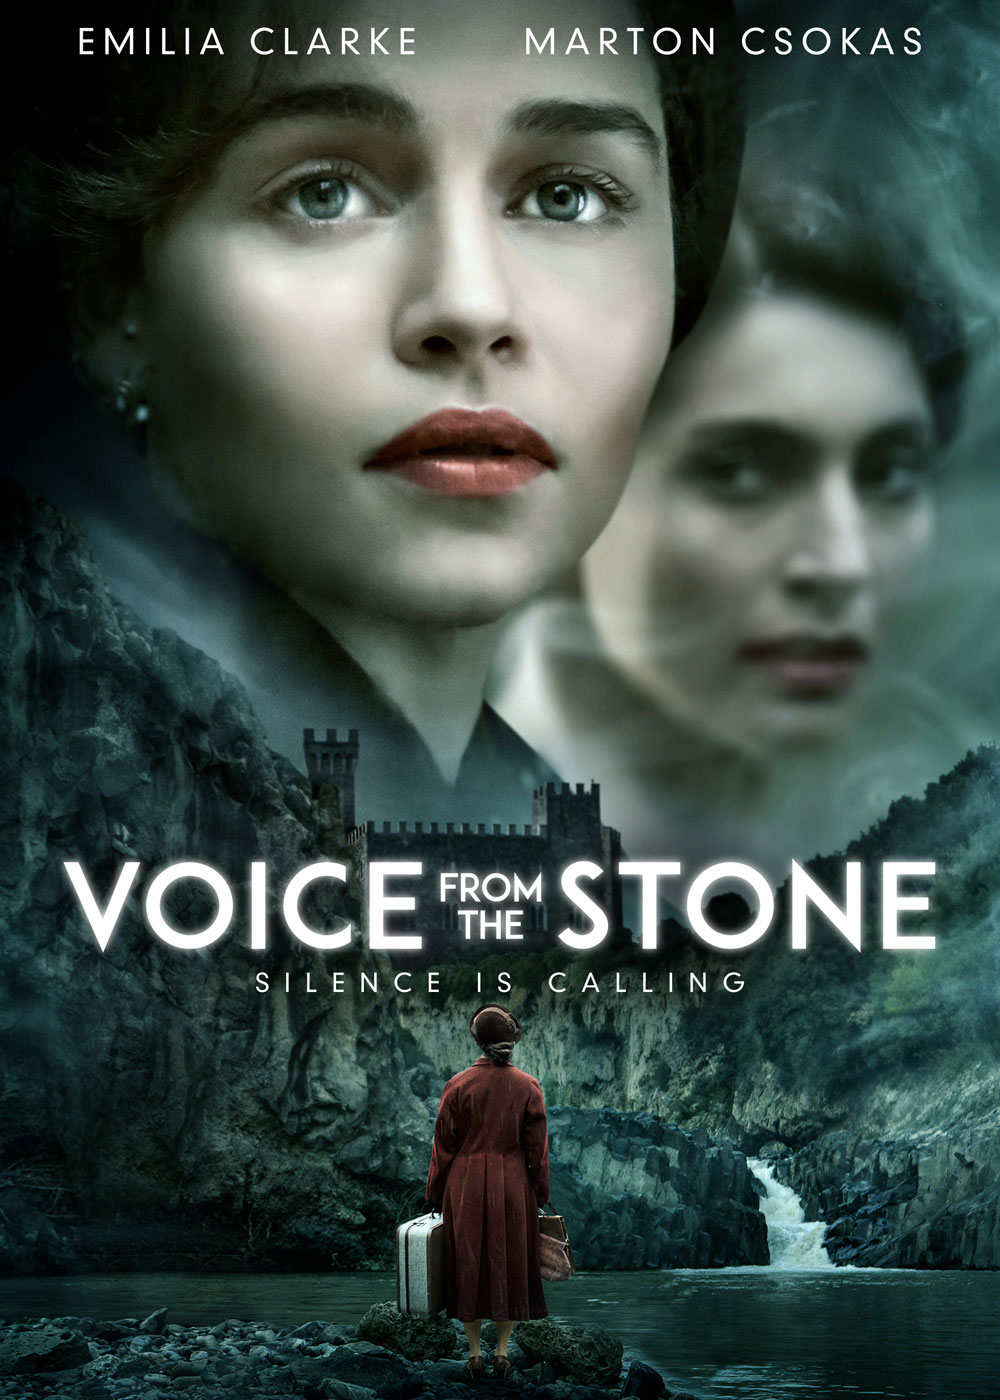 voicefromthestone - New Voice from the Stone Clip Brings Blood